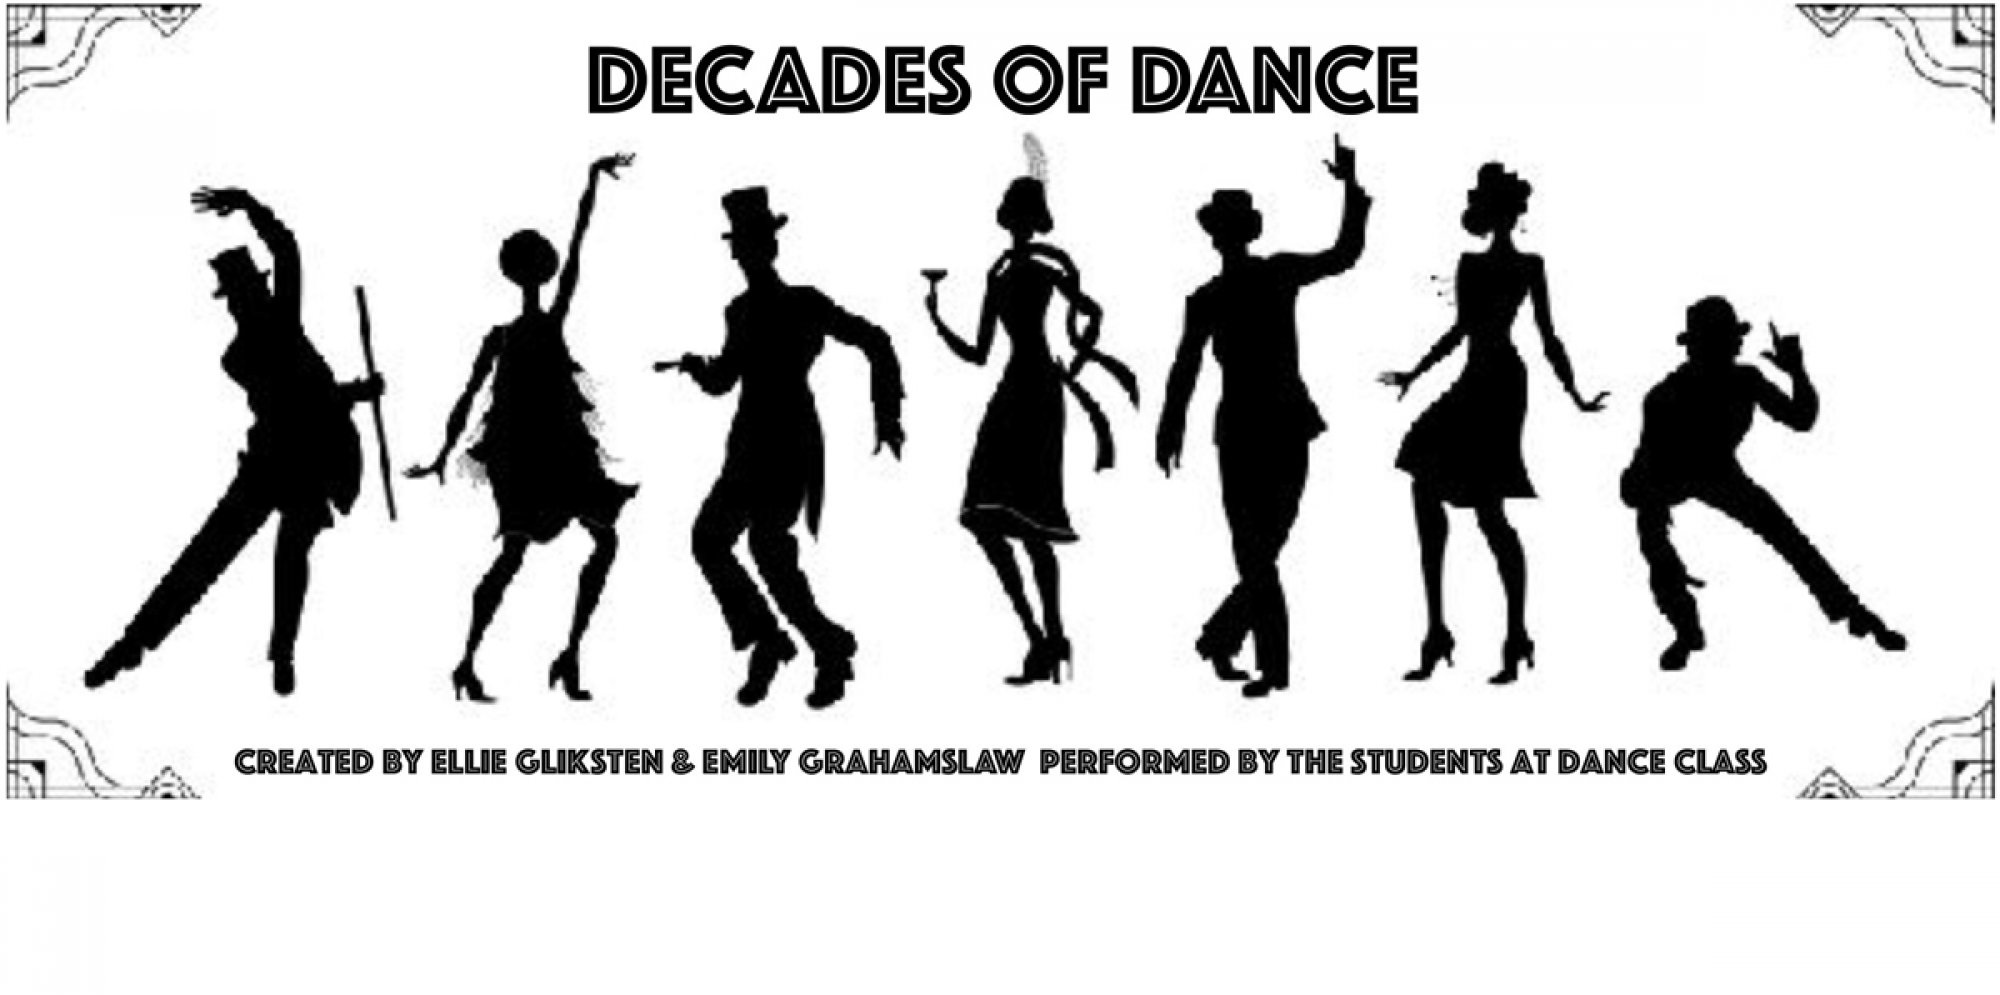 Decades of Dance: Silhouettes of 1920s male and female dancers against a white background, with the words 'Decades of Dance. Created by Ellie Gliksten & Emily Grahamslaw. Performed by the students at Dance Class.'